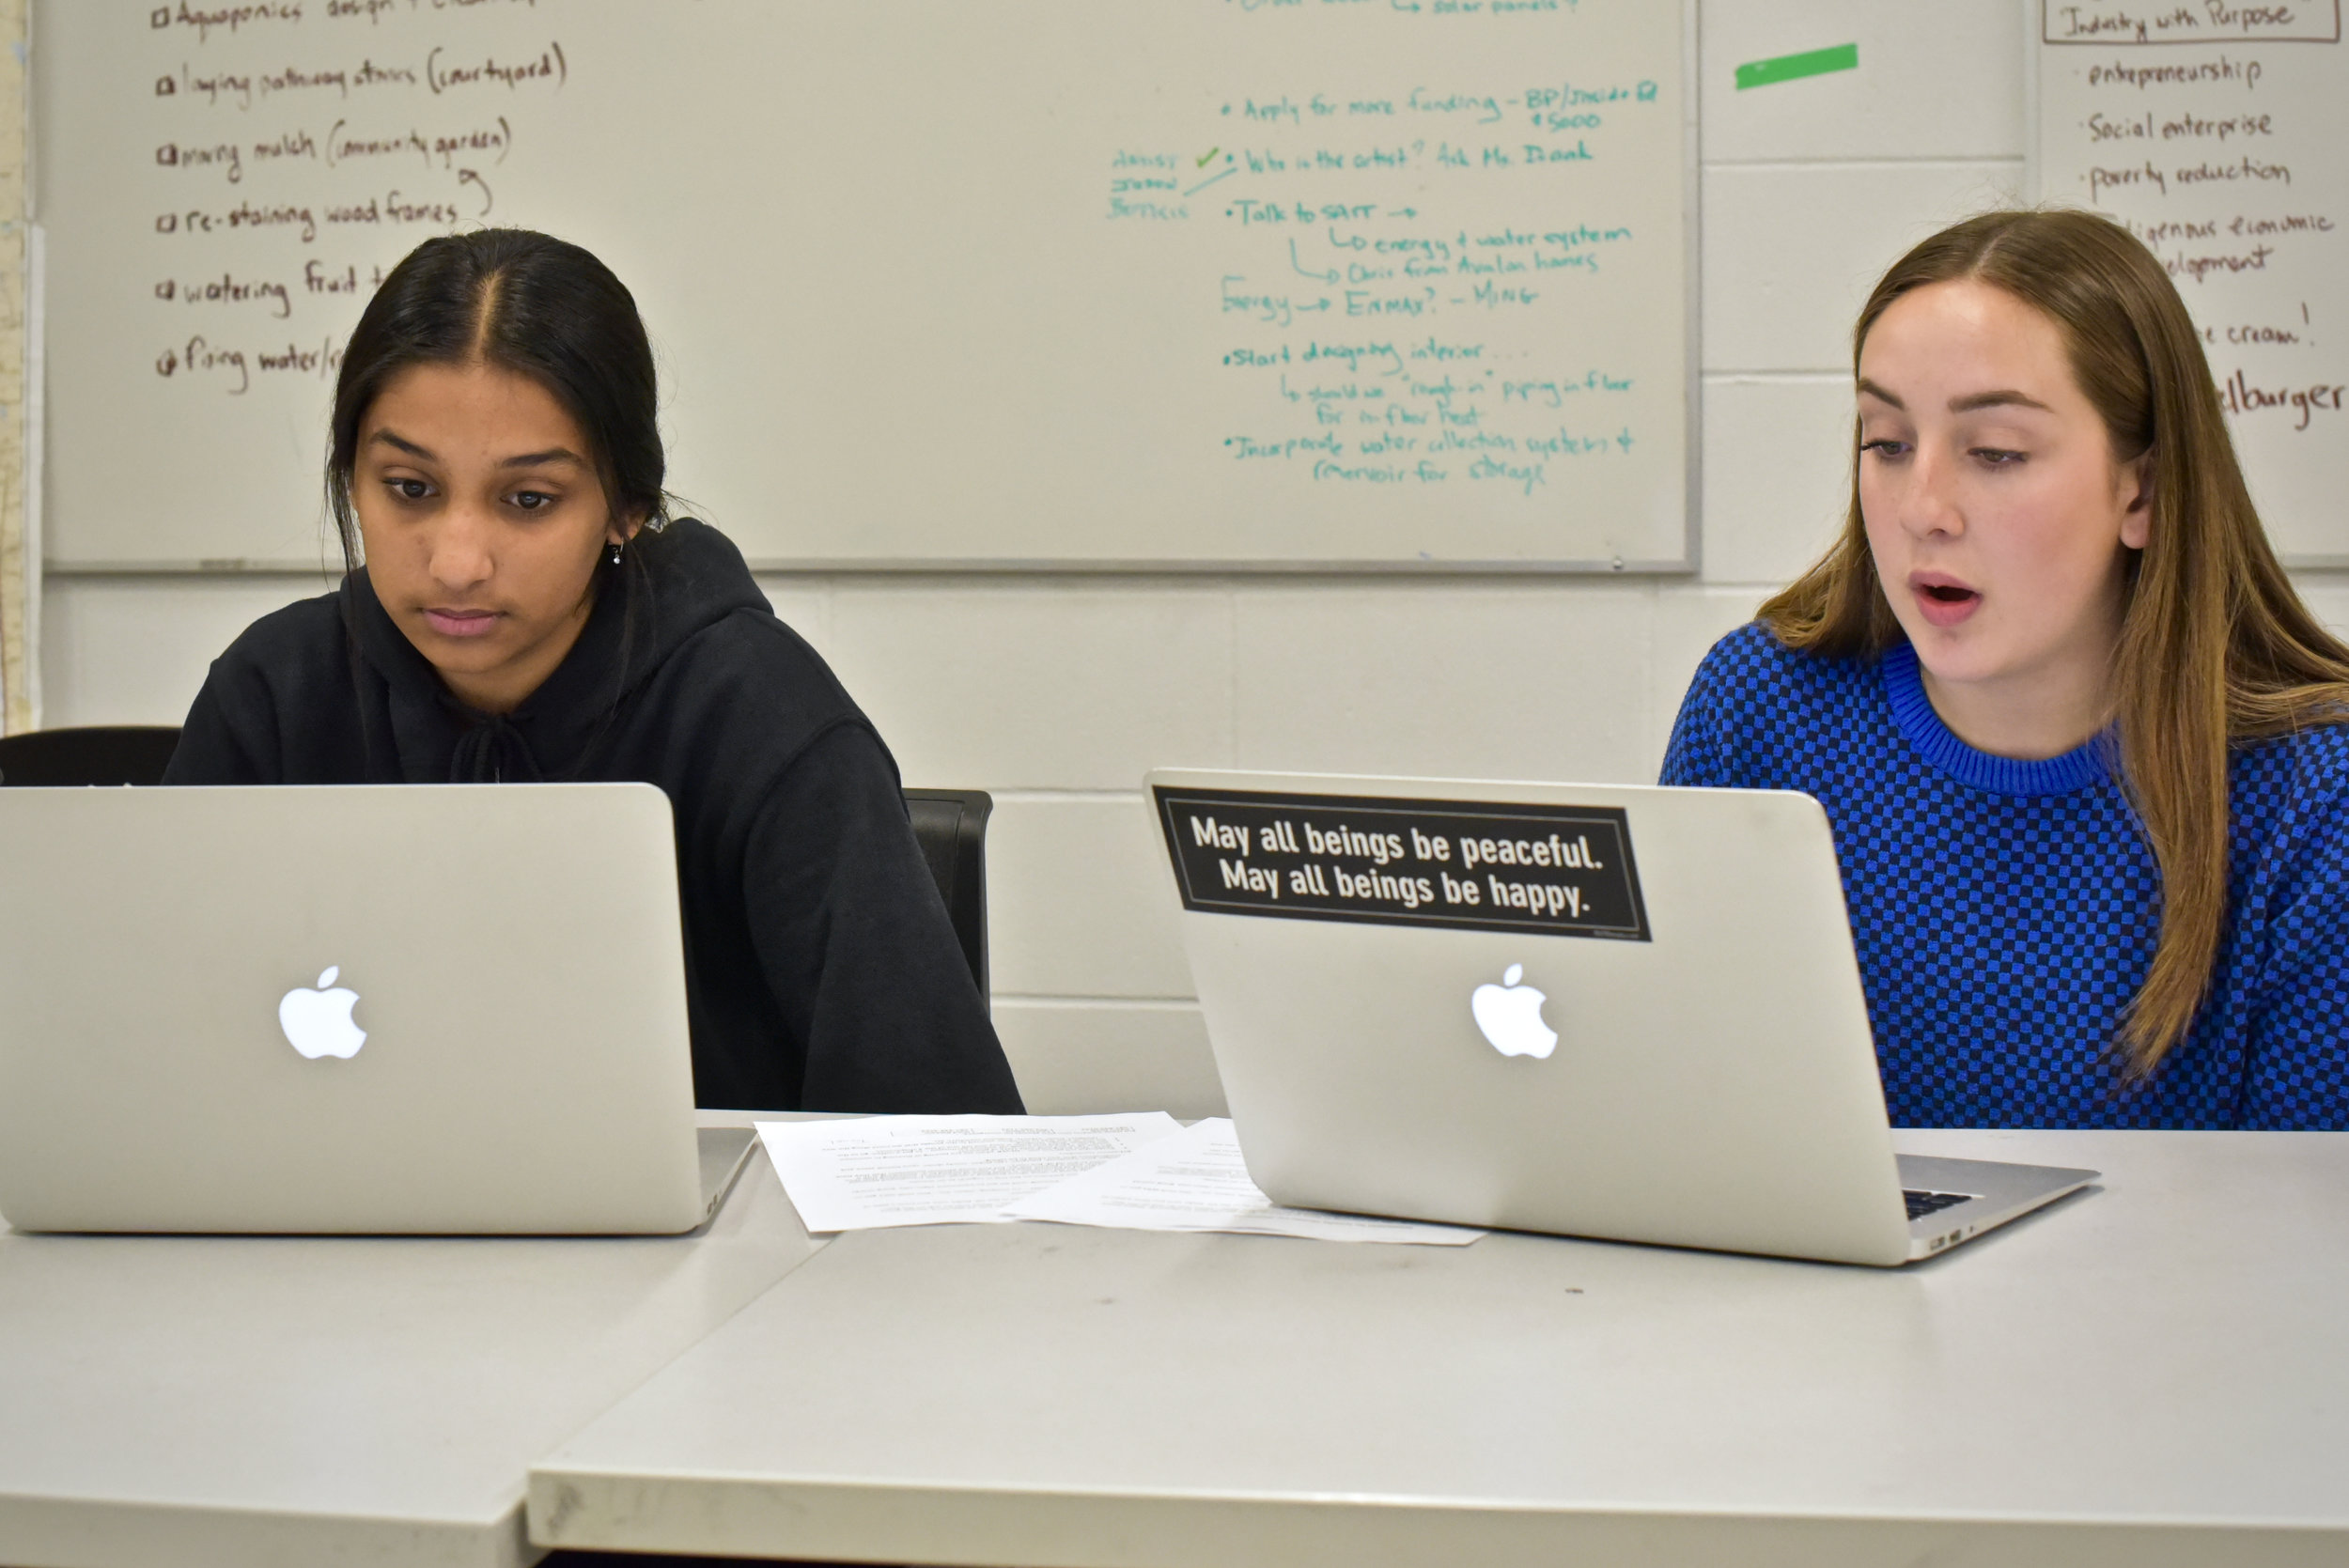 Neha Patter (left) and Abby Storrow work on a presentation about making school buildings more environmentally friendly. (Sarah Lawrynuik/The Narwhal)